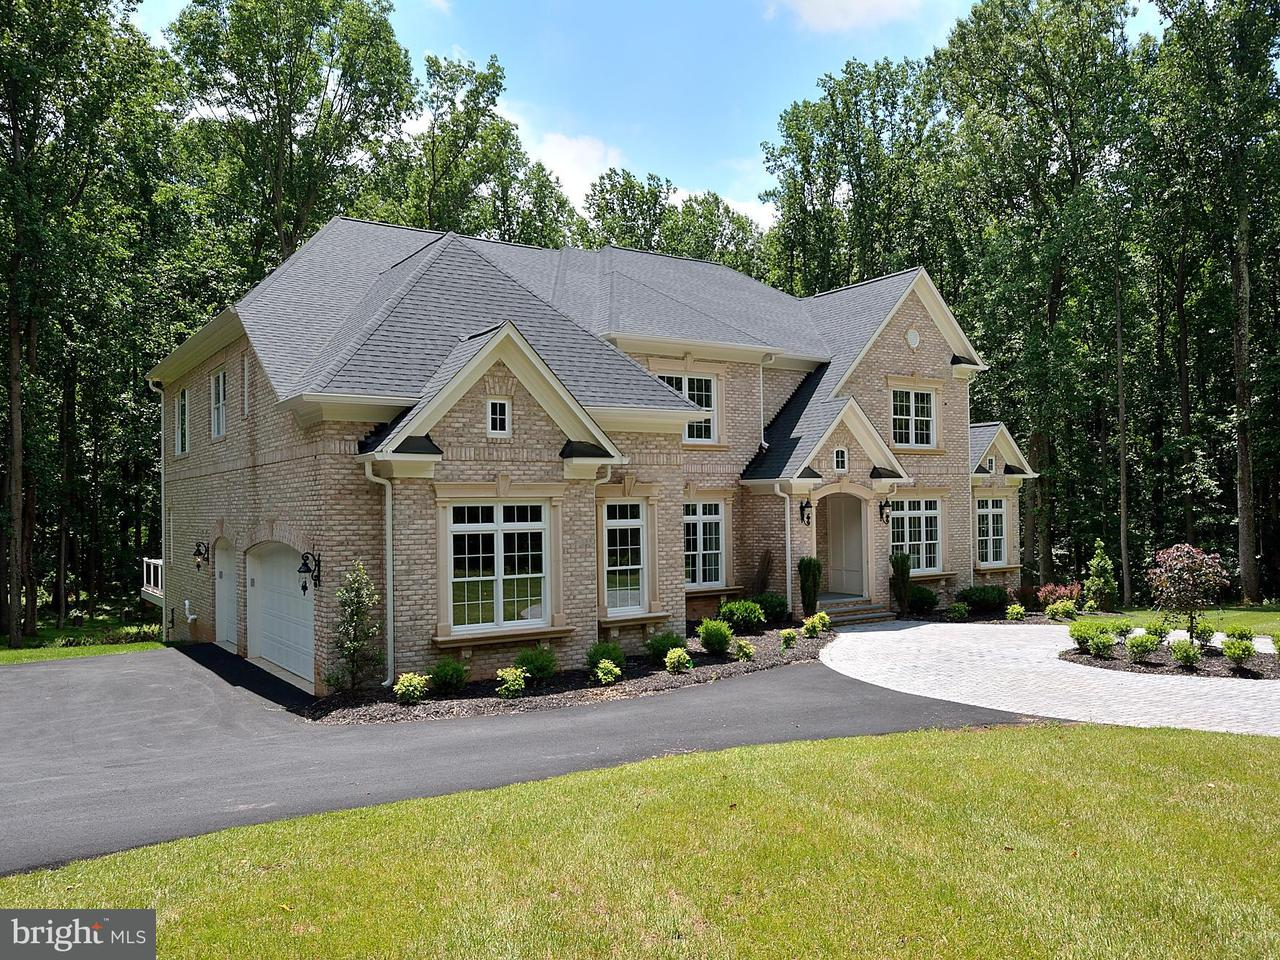 Single Family Home for Sale at 680 Springvale Road 680 Springvale Road Great Falls, Virginia 22066 United States